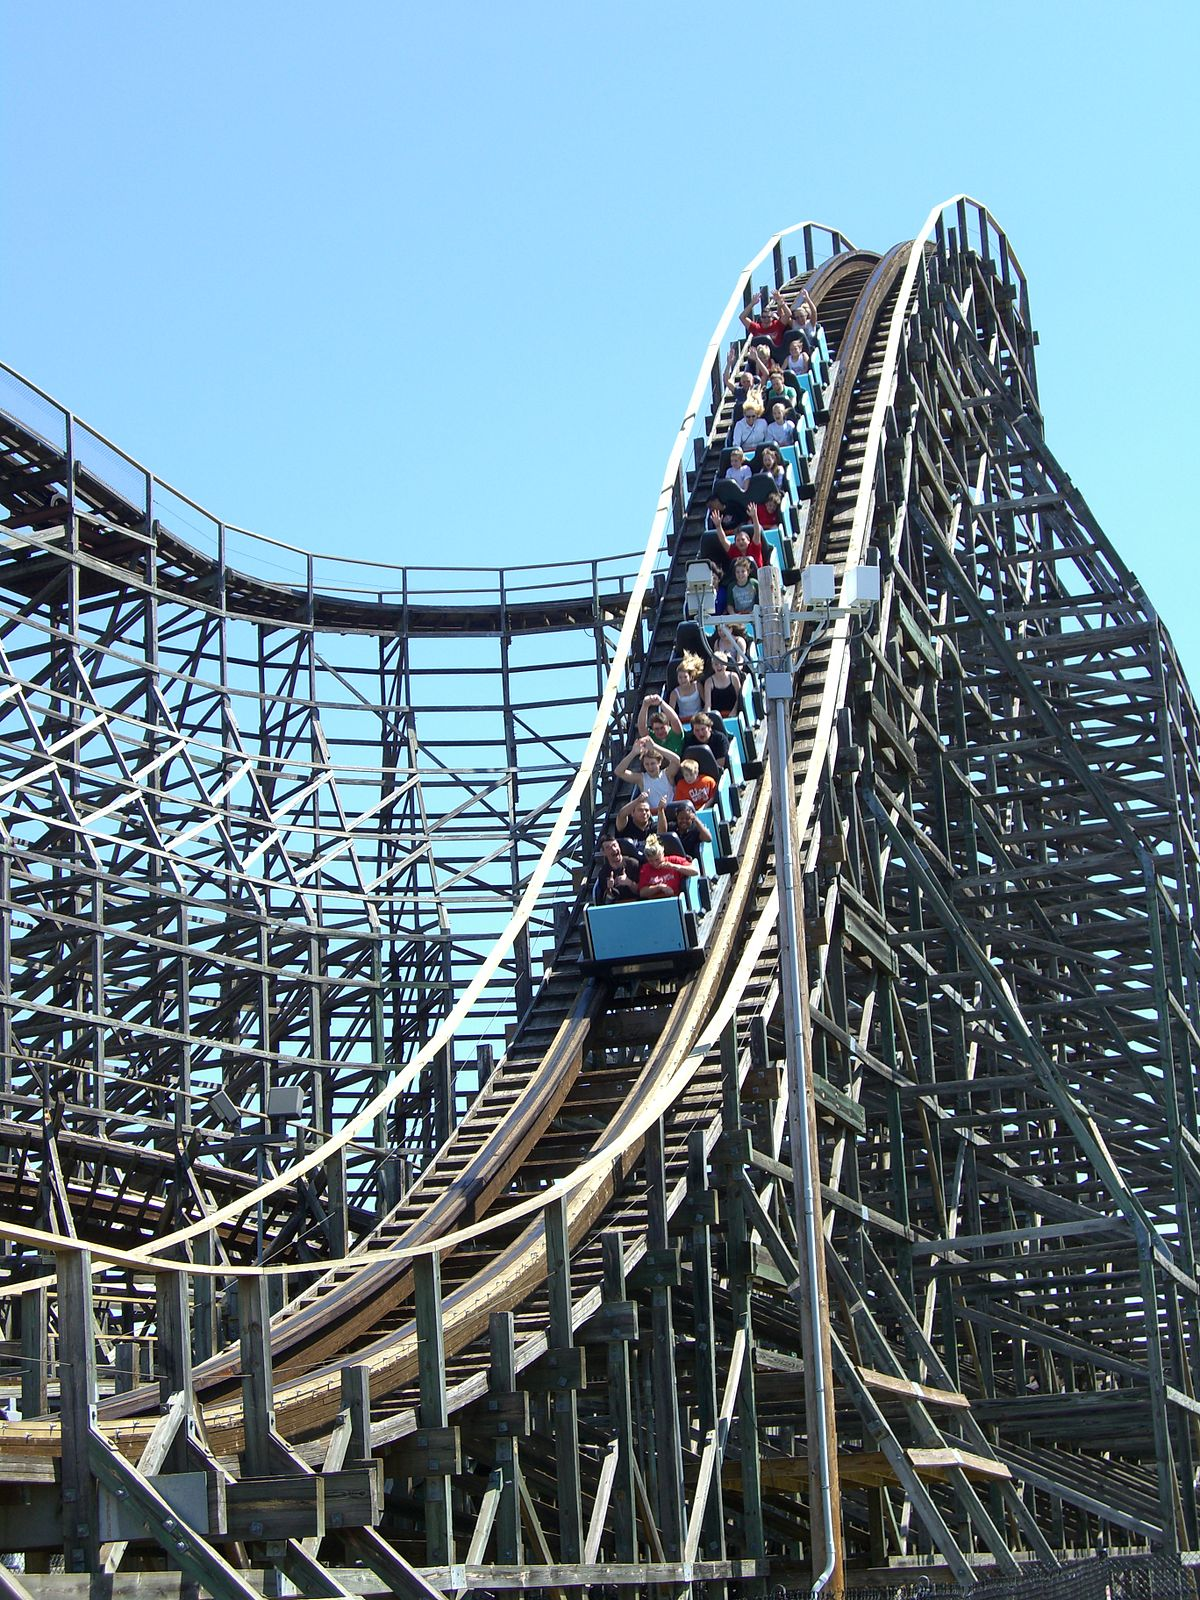 Rolling Coster